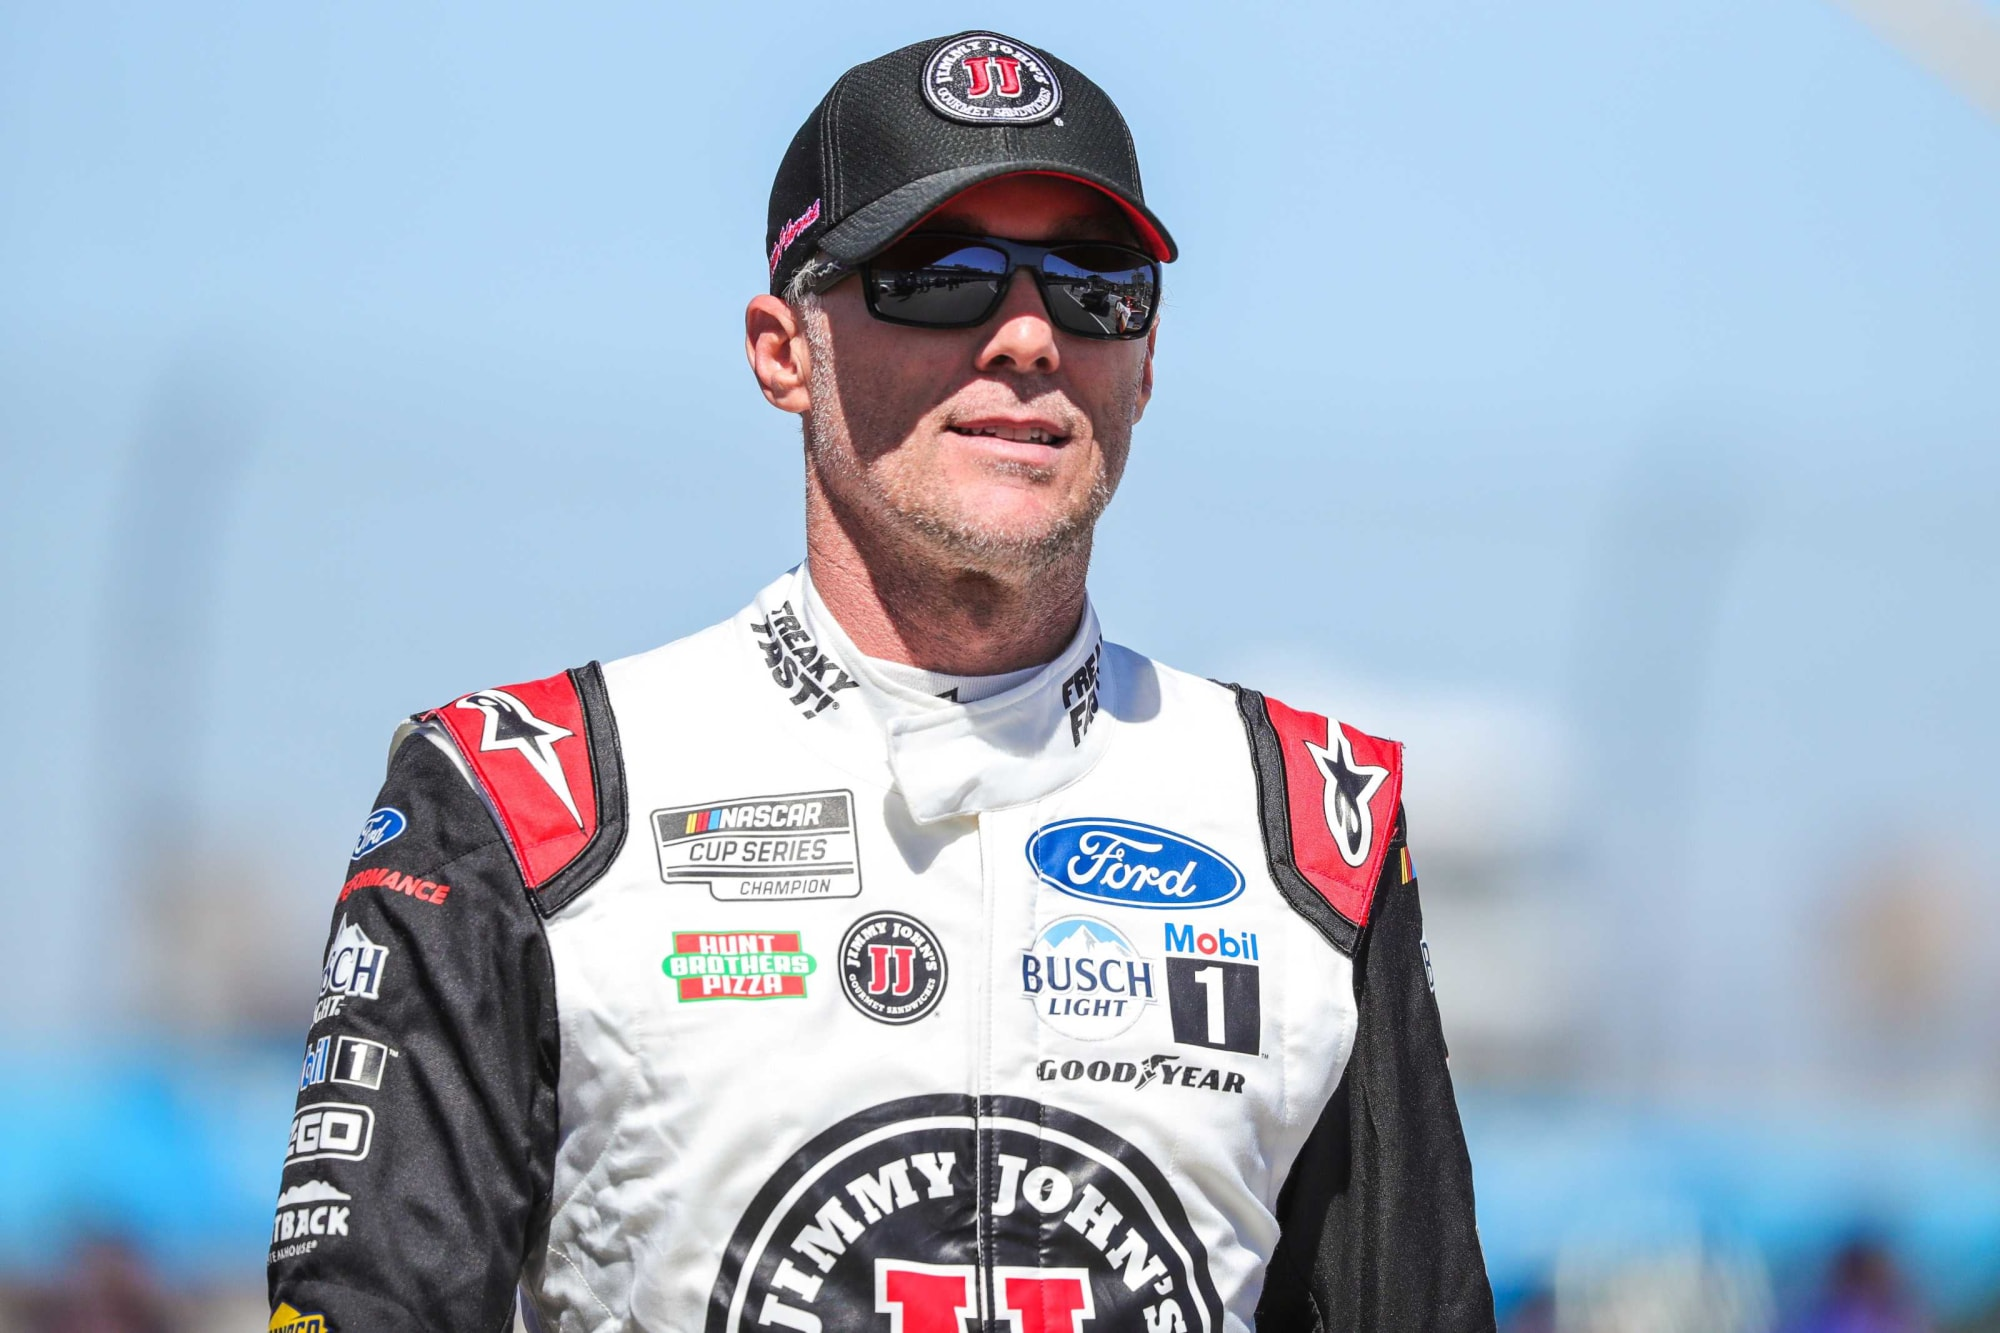 NASCAR: How rare is what Kevin Harvick pulled off?